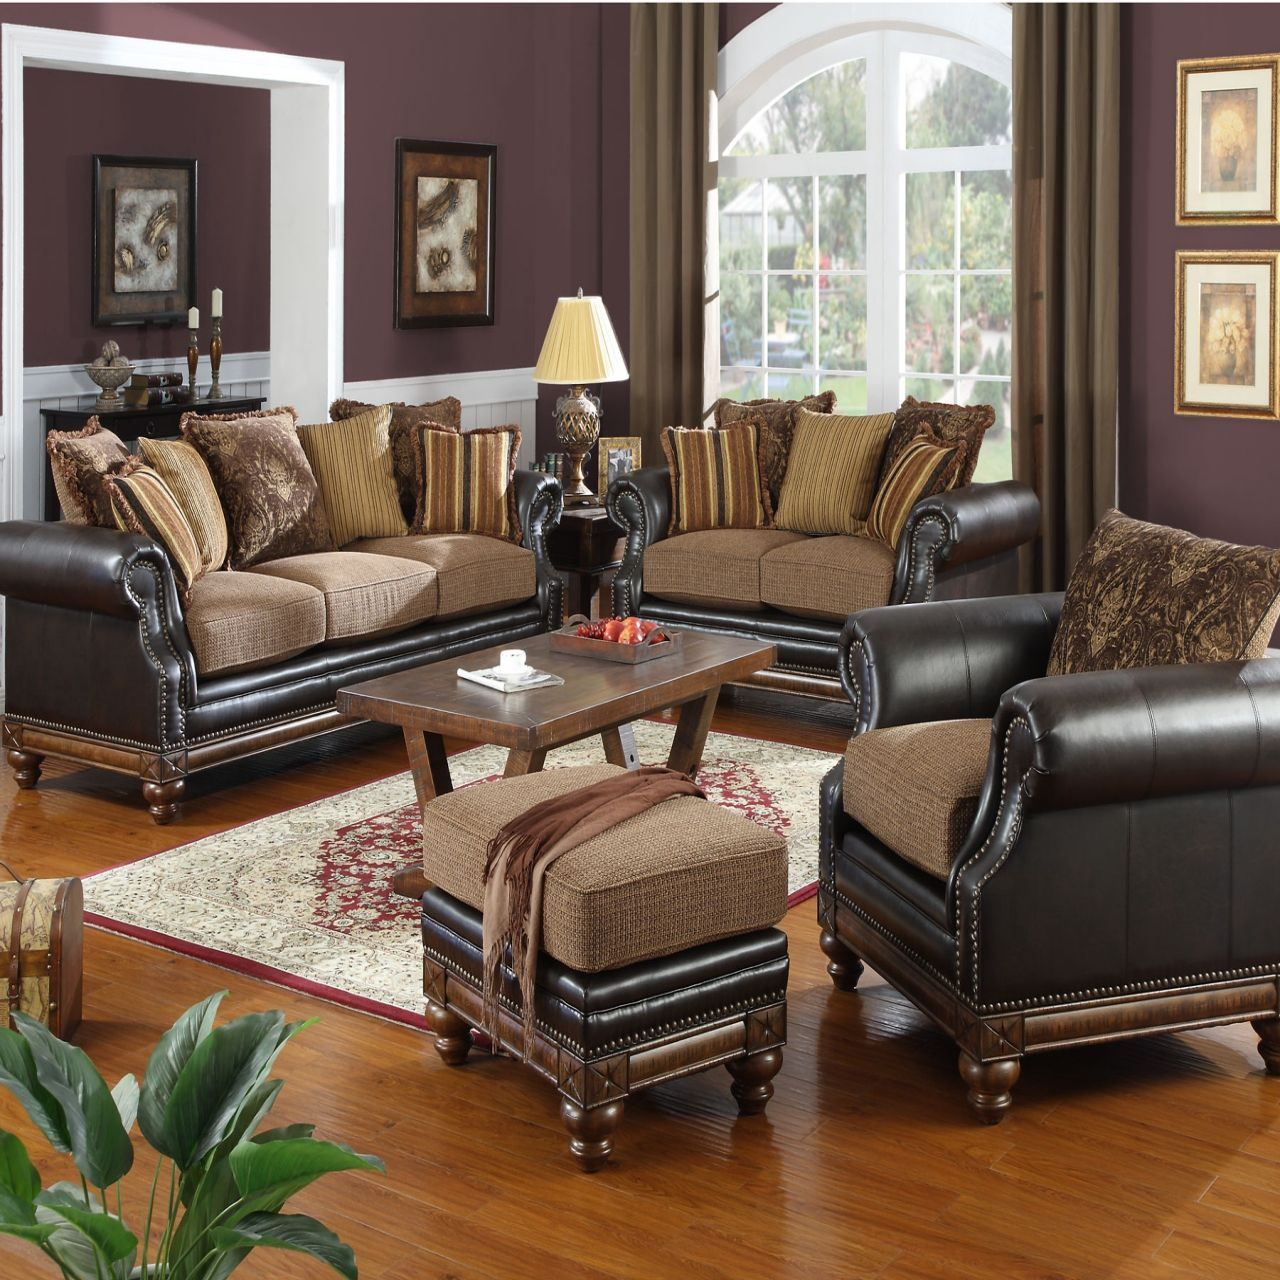 Best Living Room Sets Home And Furniture Desain Interior Interior Desain Interior Rumah #raymour #and #flanigan #leather #living #room #sets